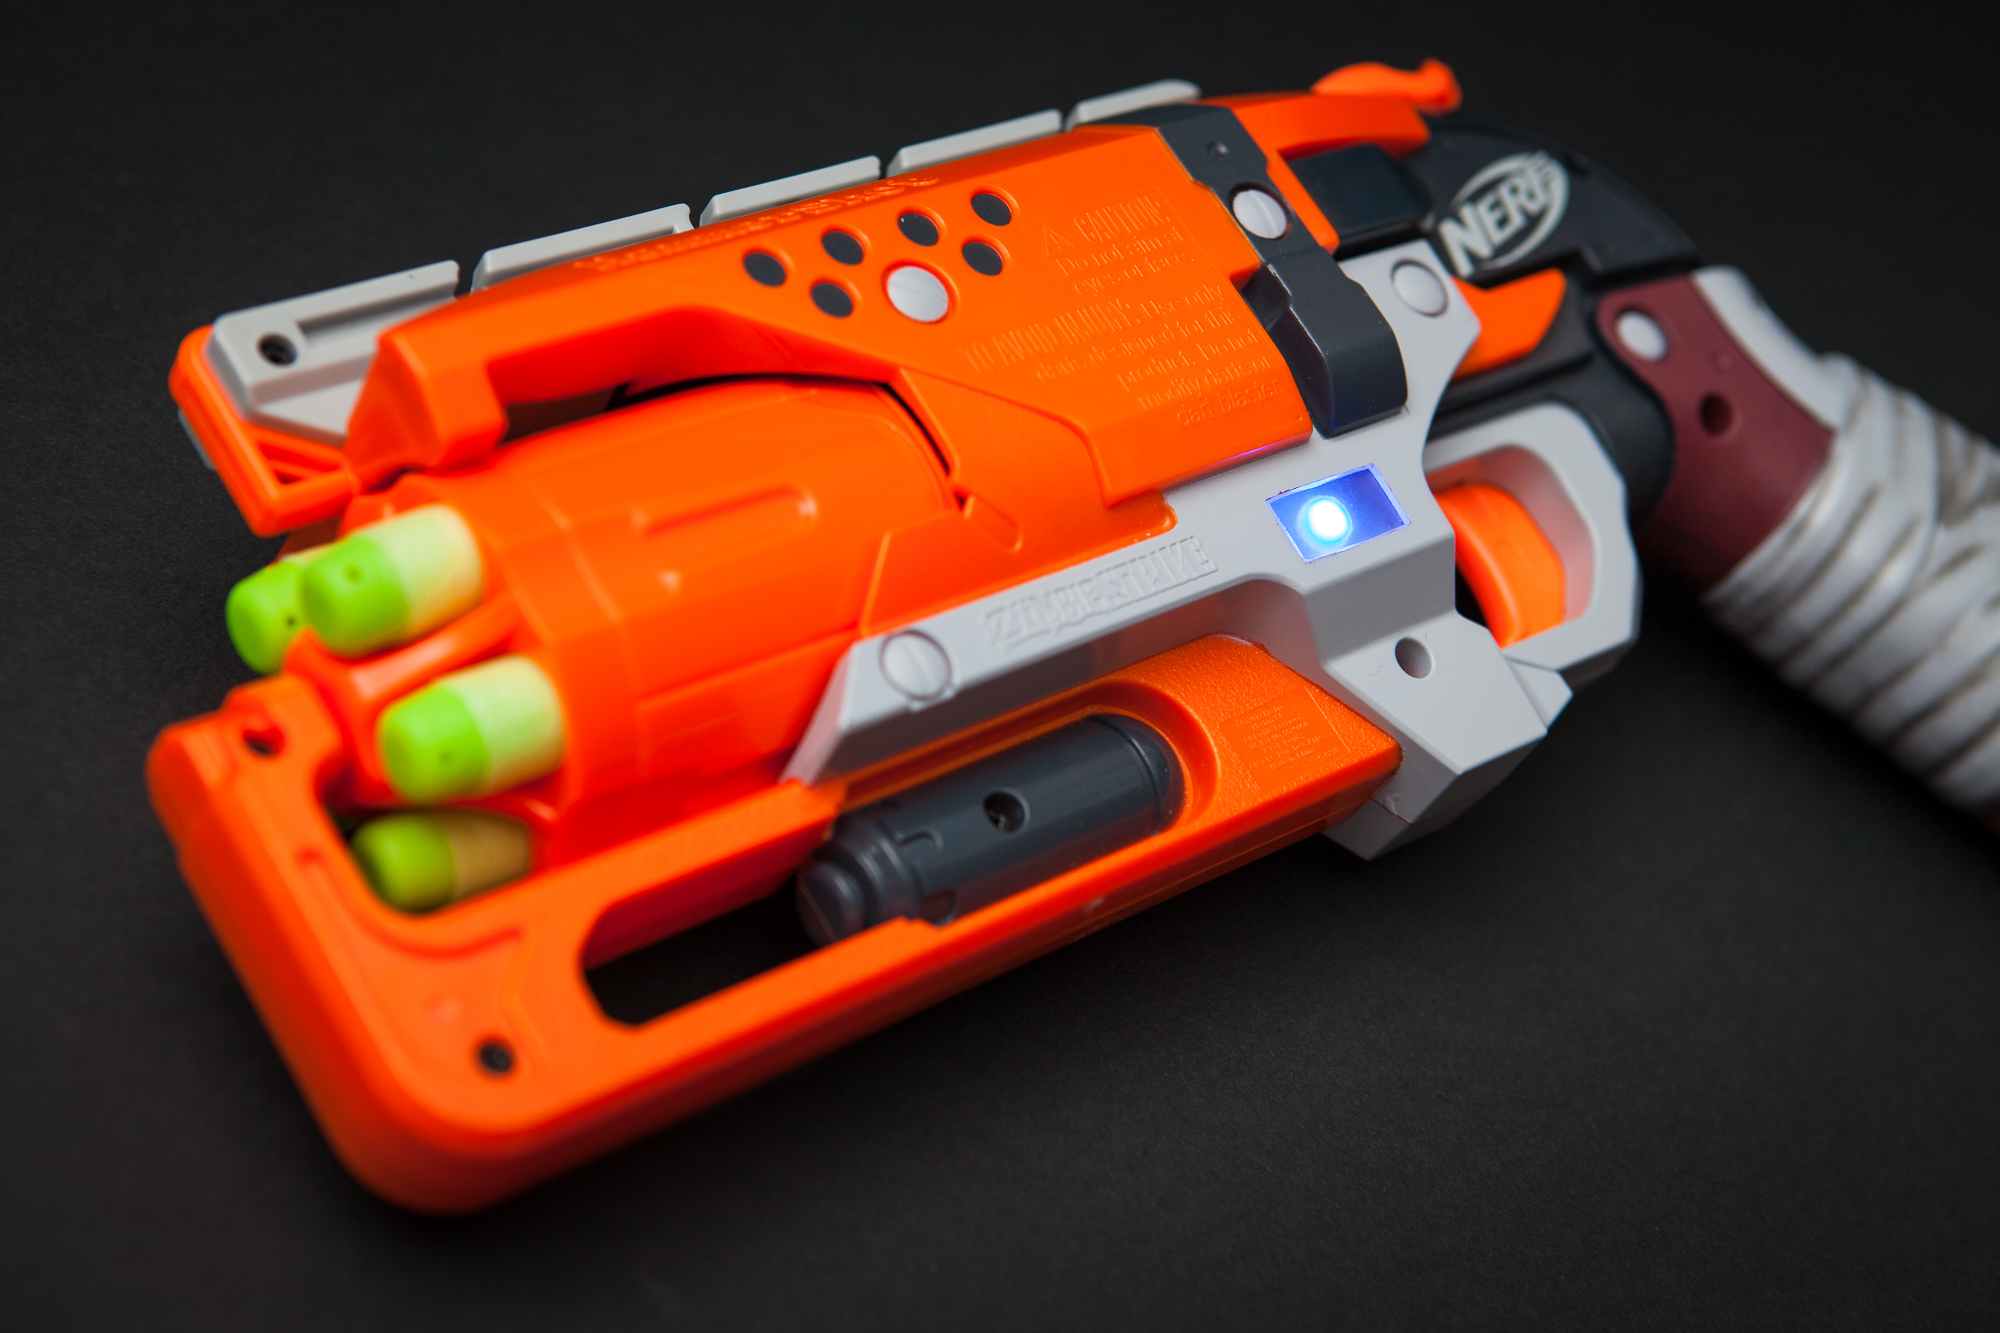 McCree Hammershot Controller: RGB LED and Capacitive Touch